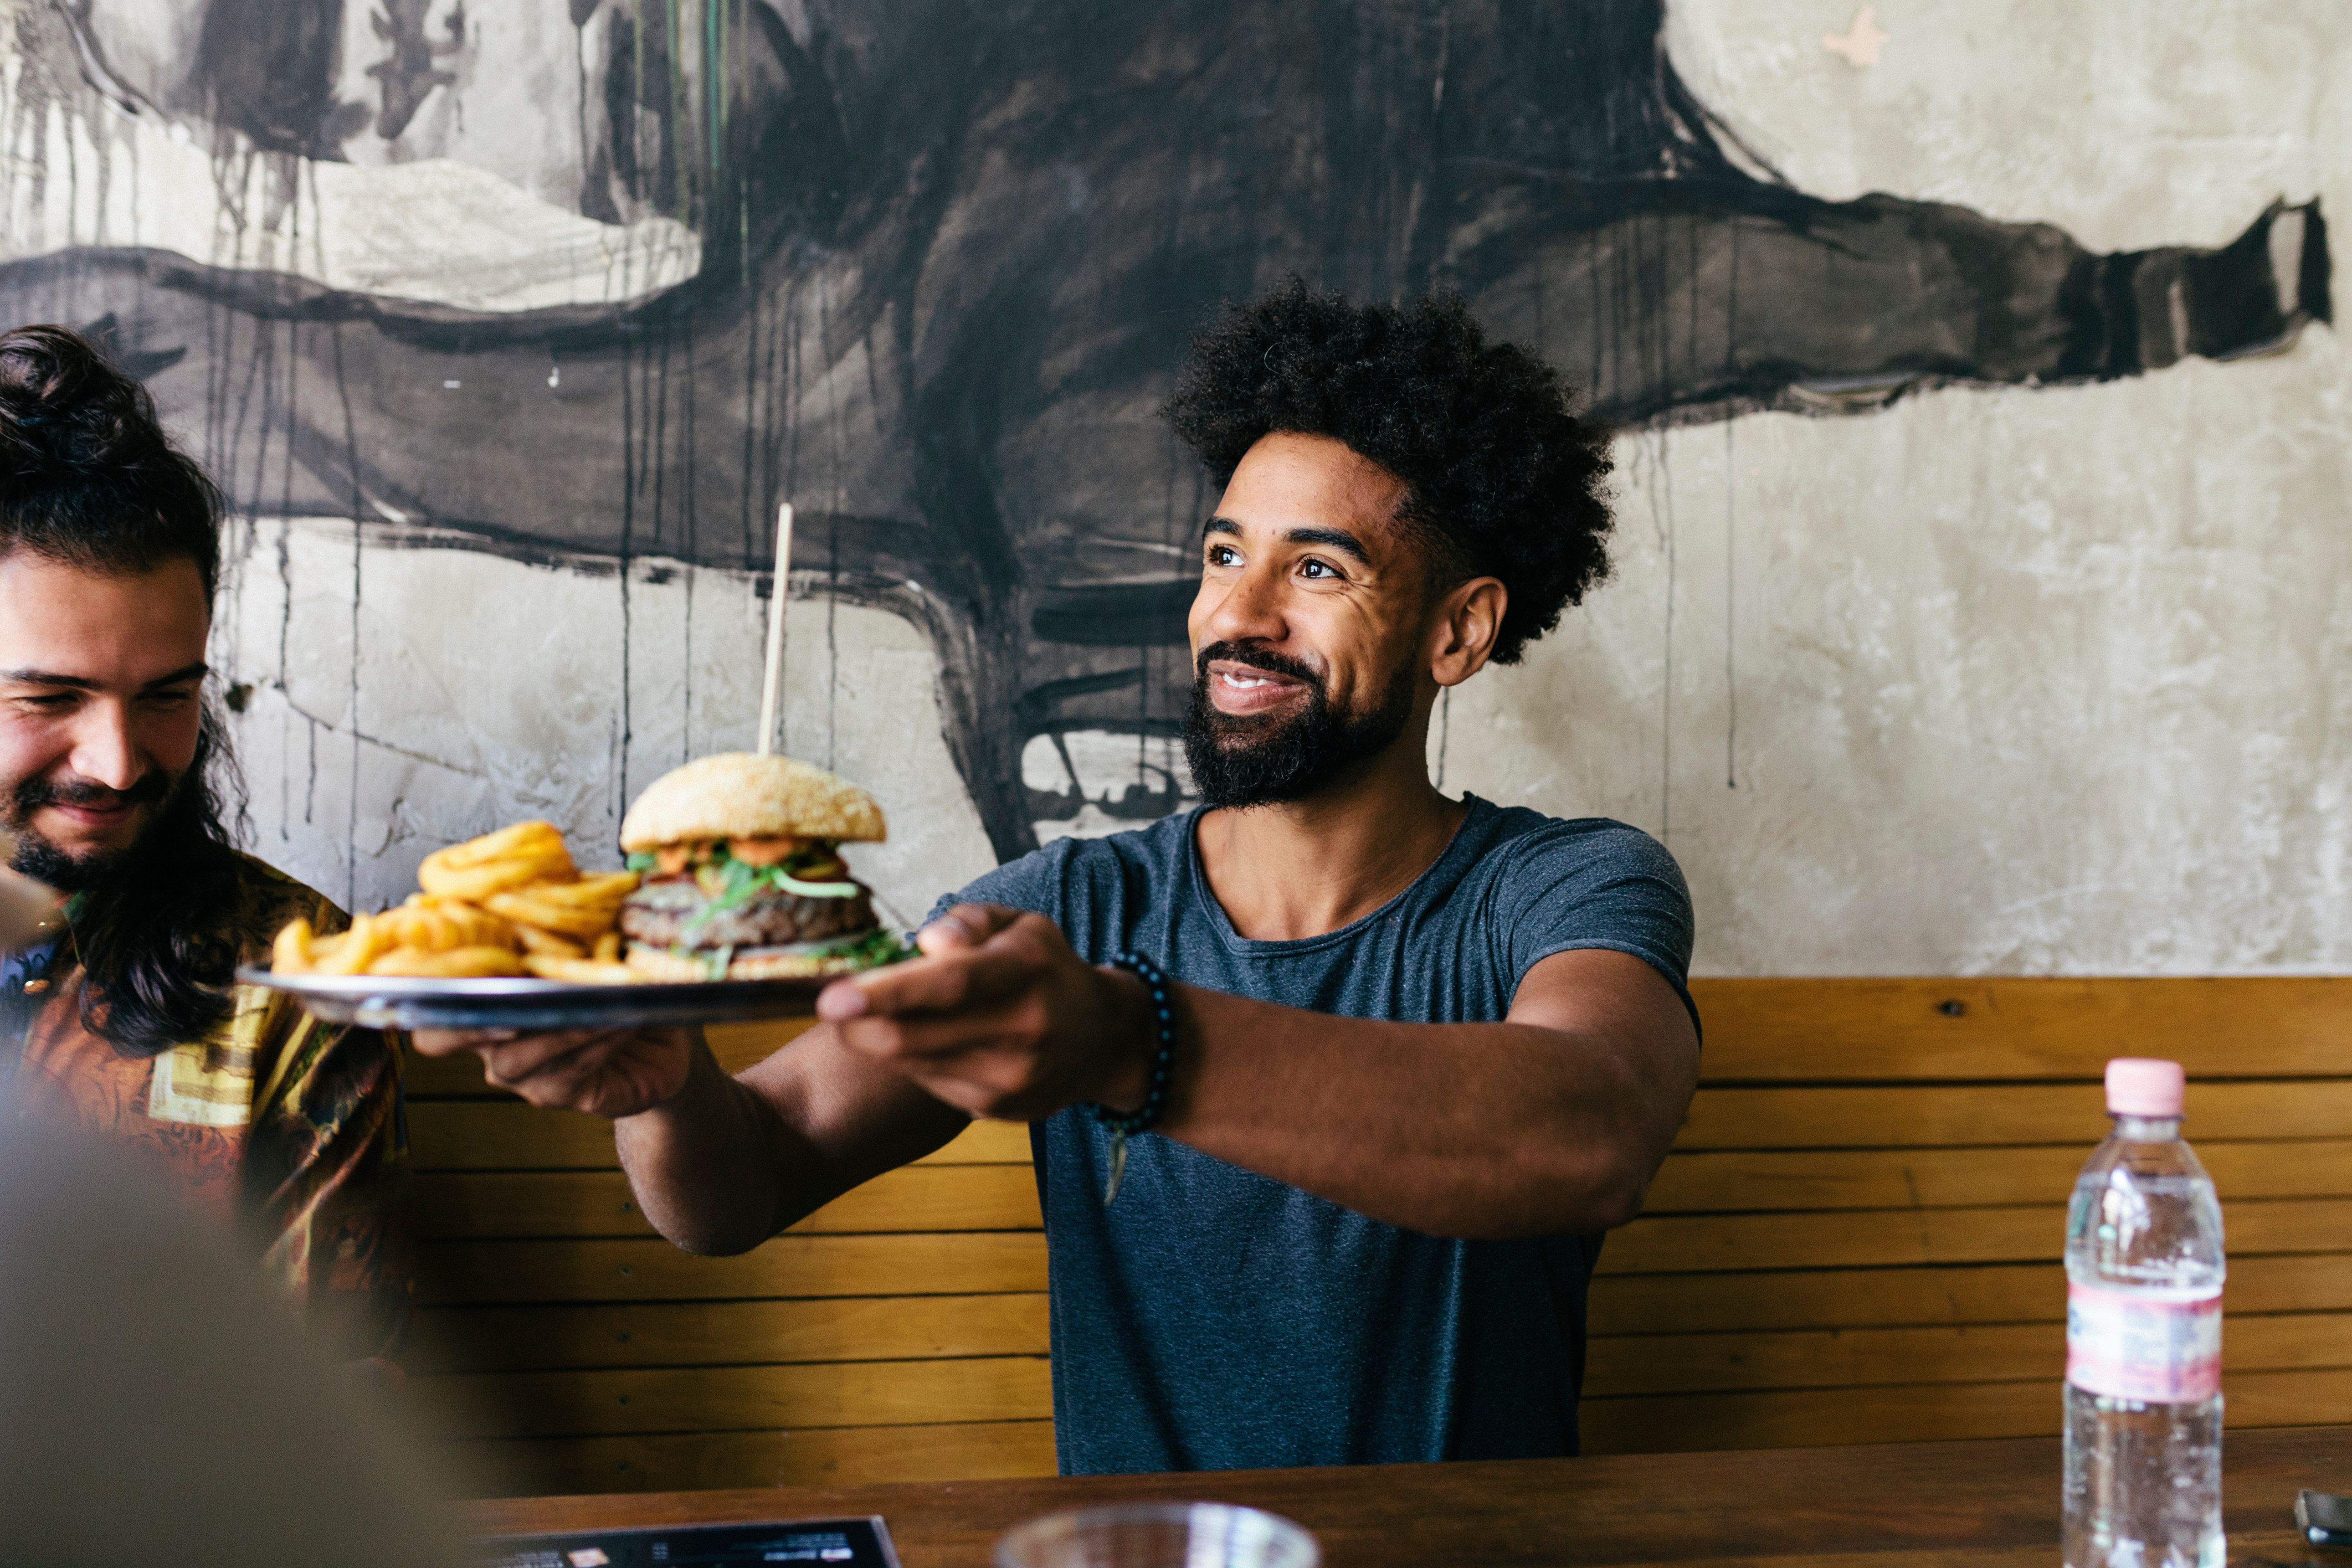 Restaurant meals less healthy than takeaways